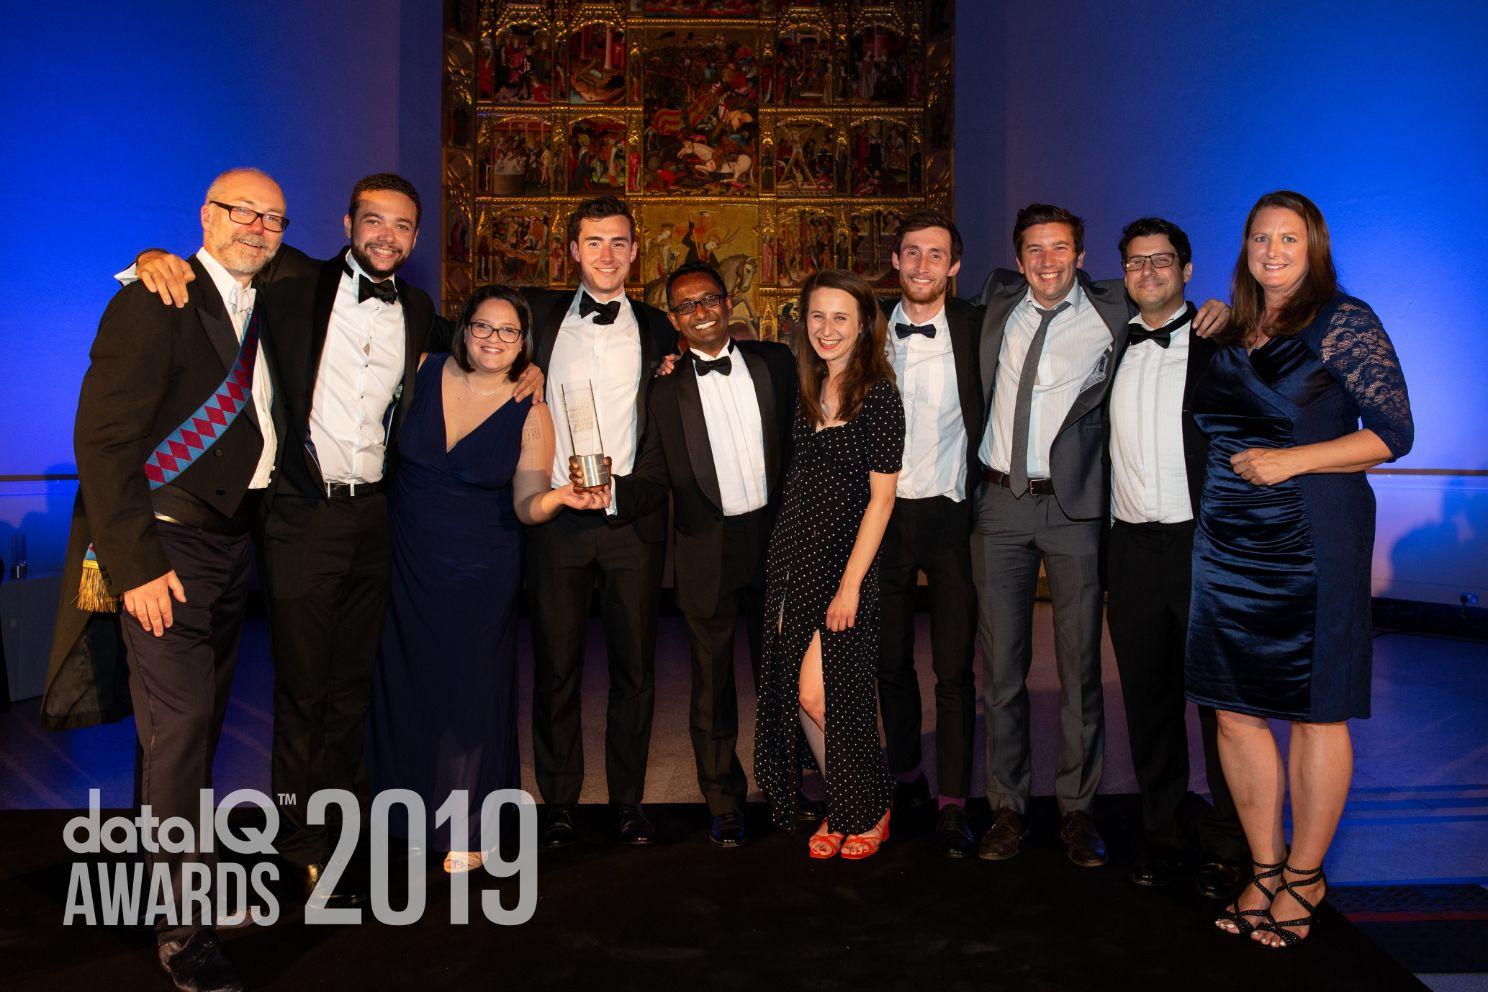 Awards 2019 Image 44